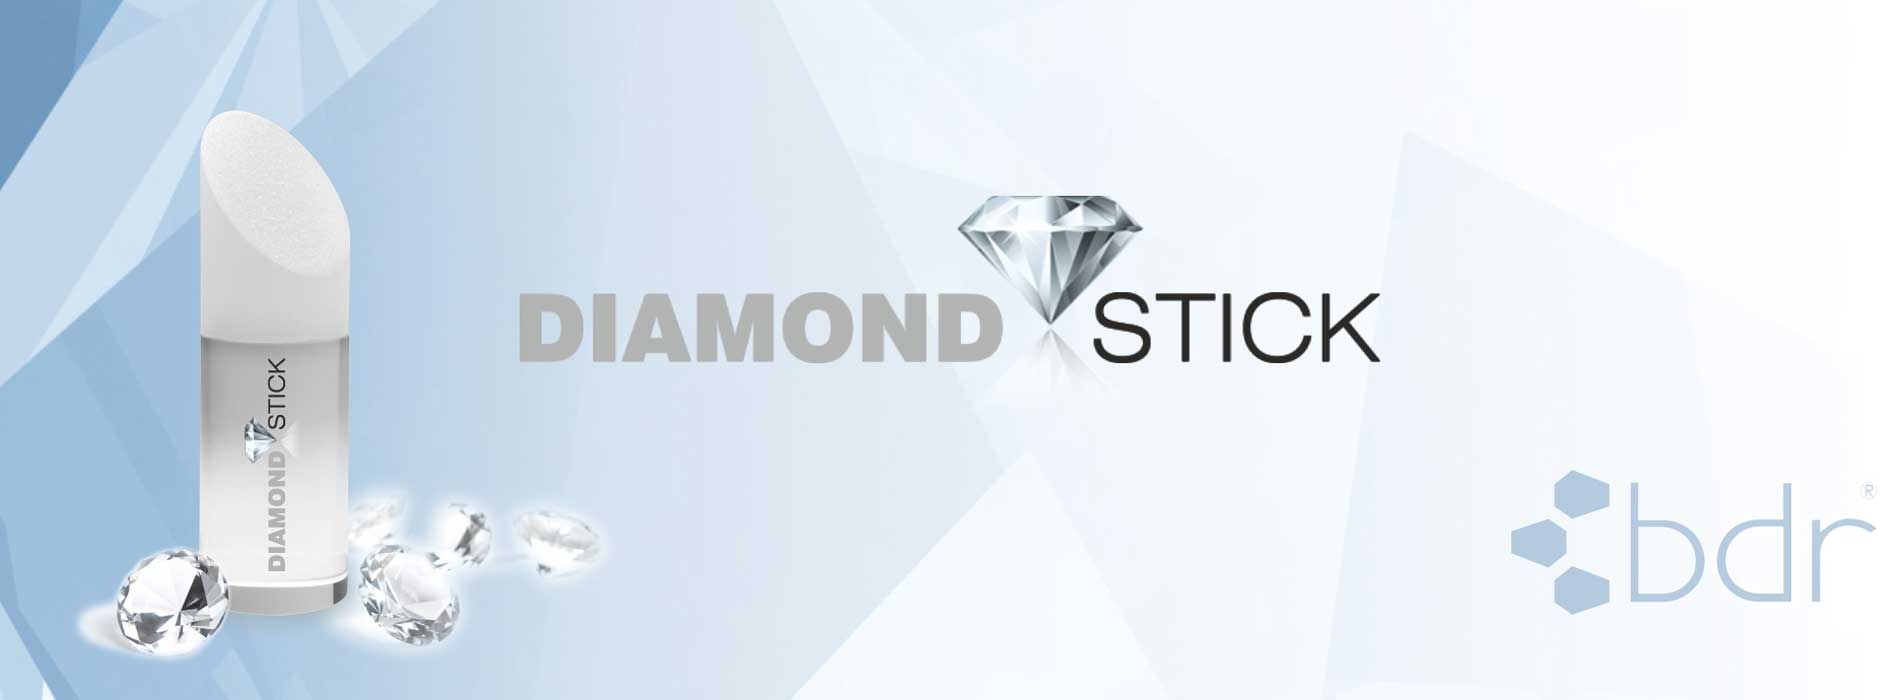 DIAMOND STICK